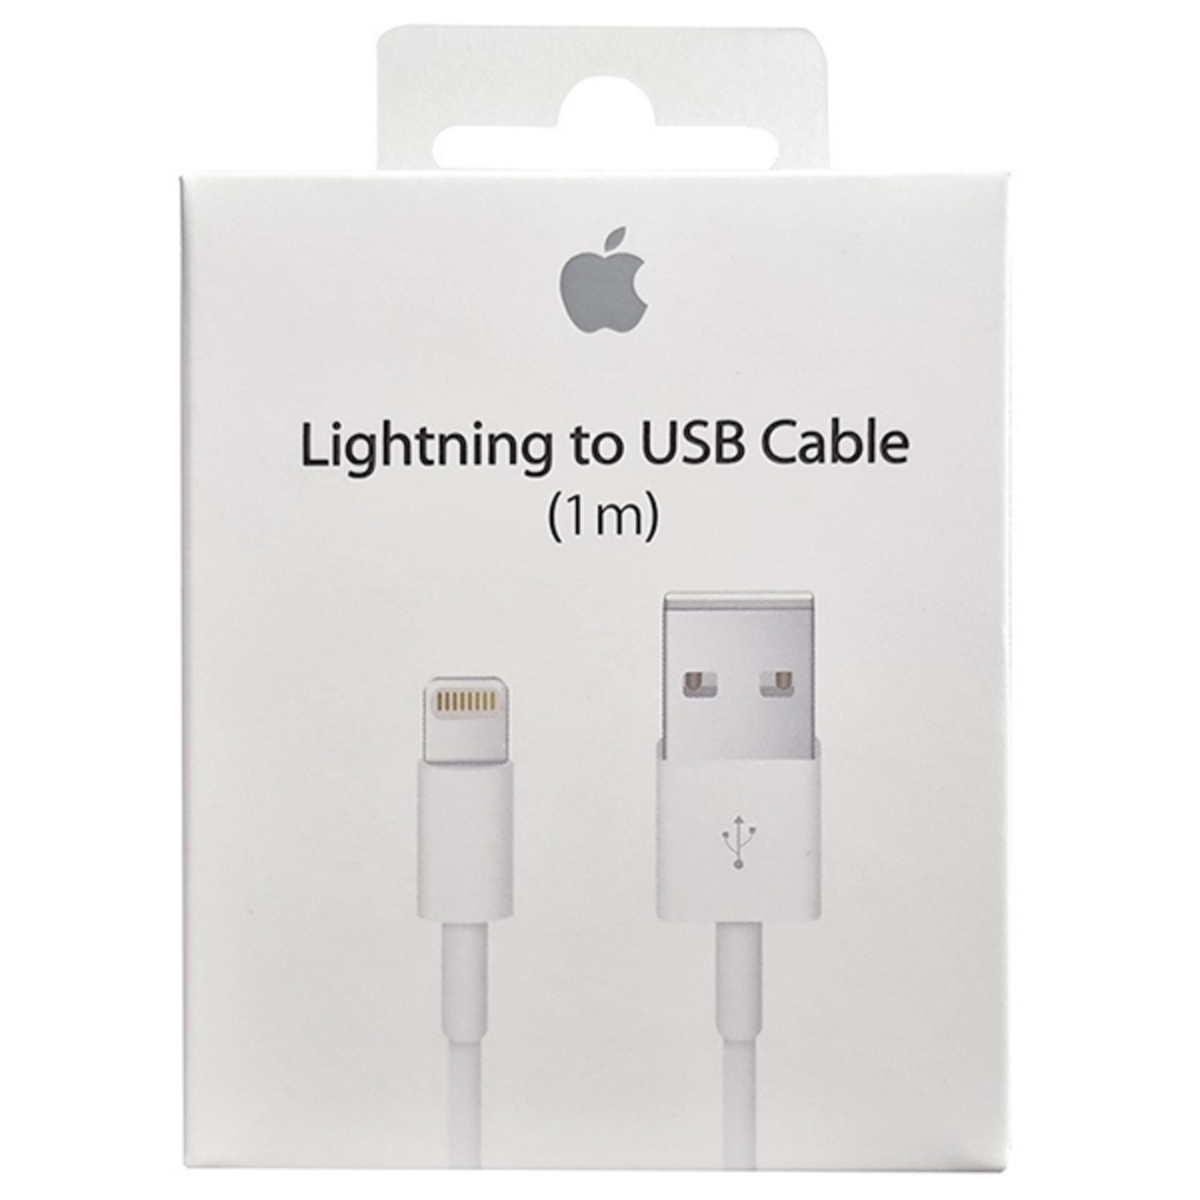 Apple cable  Lightning a USB (1 m) $ 6,97USD